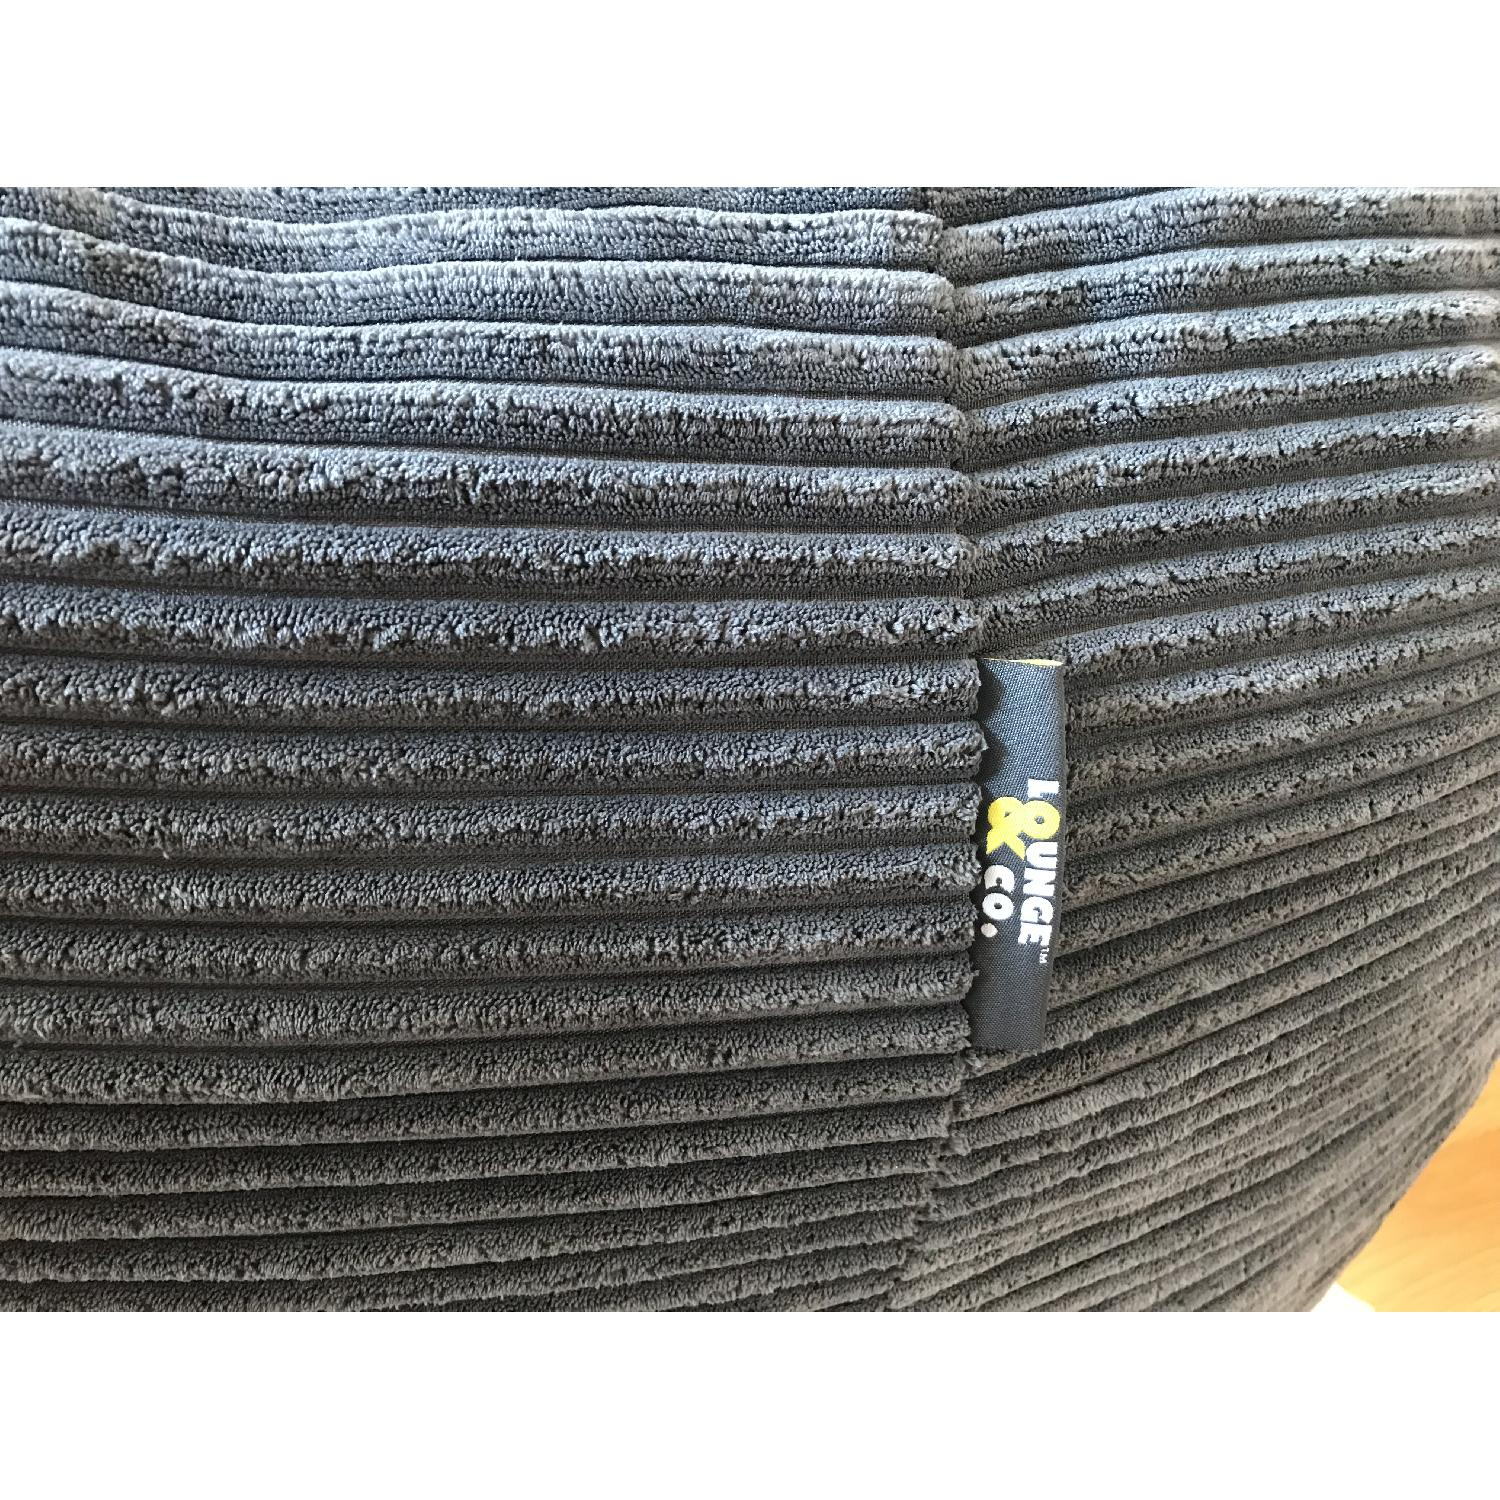 Lounge & Co Jumbo Foam Bean Bag - image-3